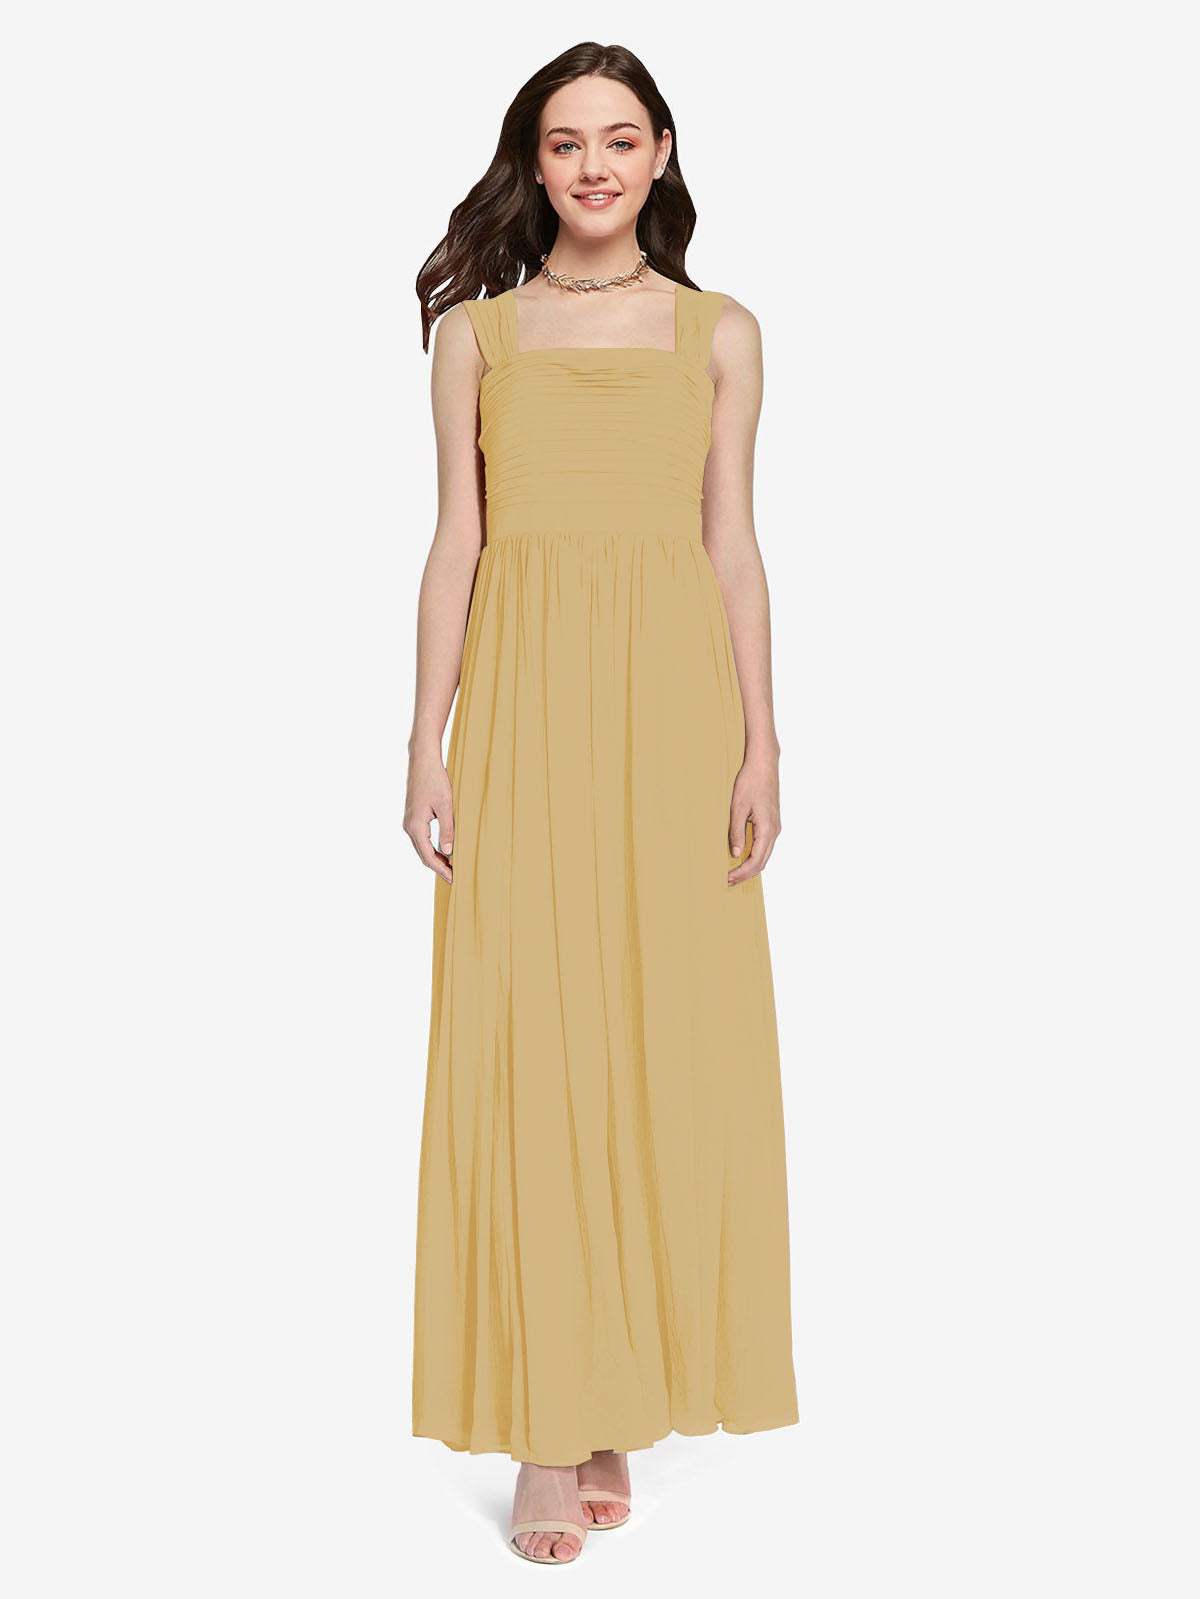 Long A-Line Square Sleeveless Gold Chiffon Bridesmaid Dress Aldridge